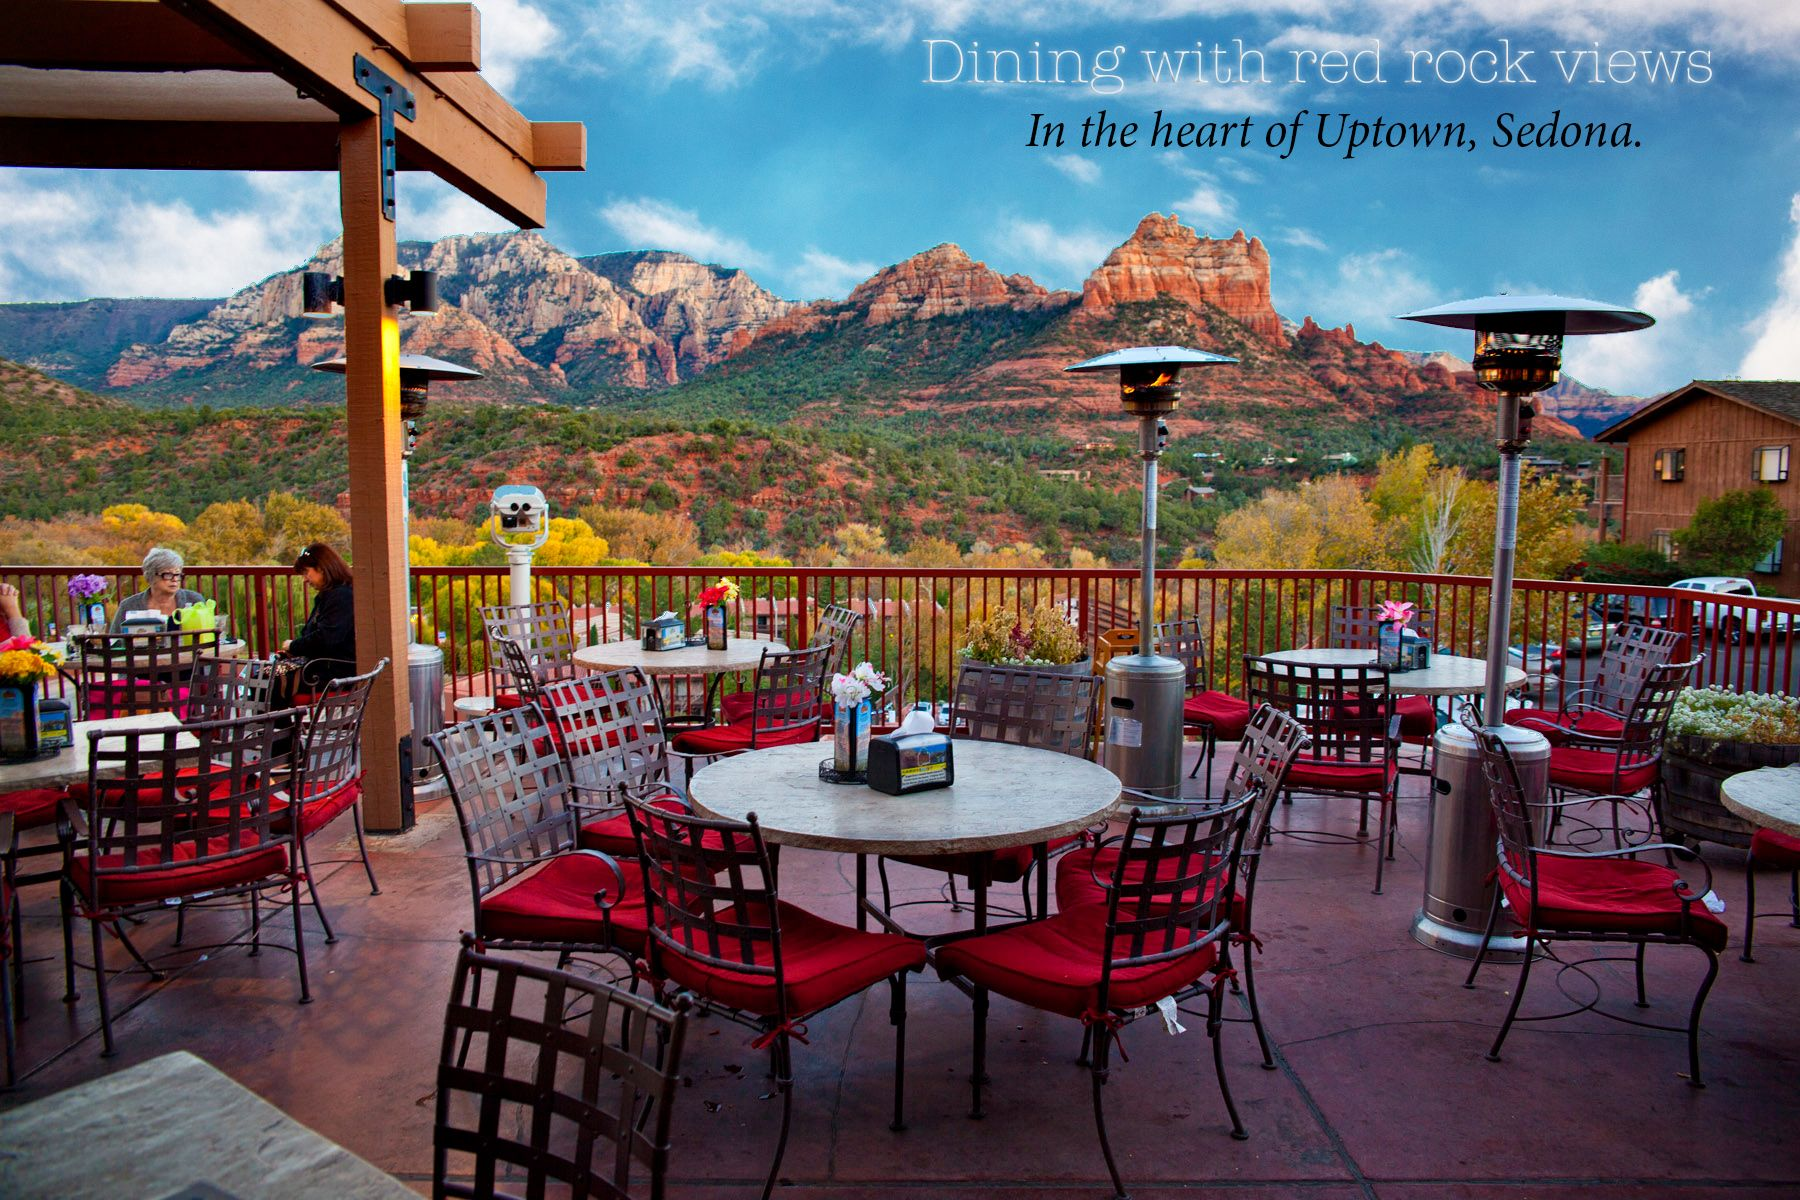 Canyon Breeze Dining Red Rock Views Mixed reviews on food